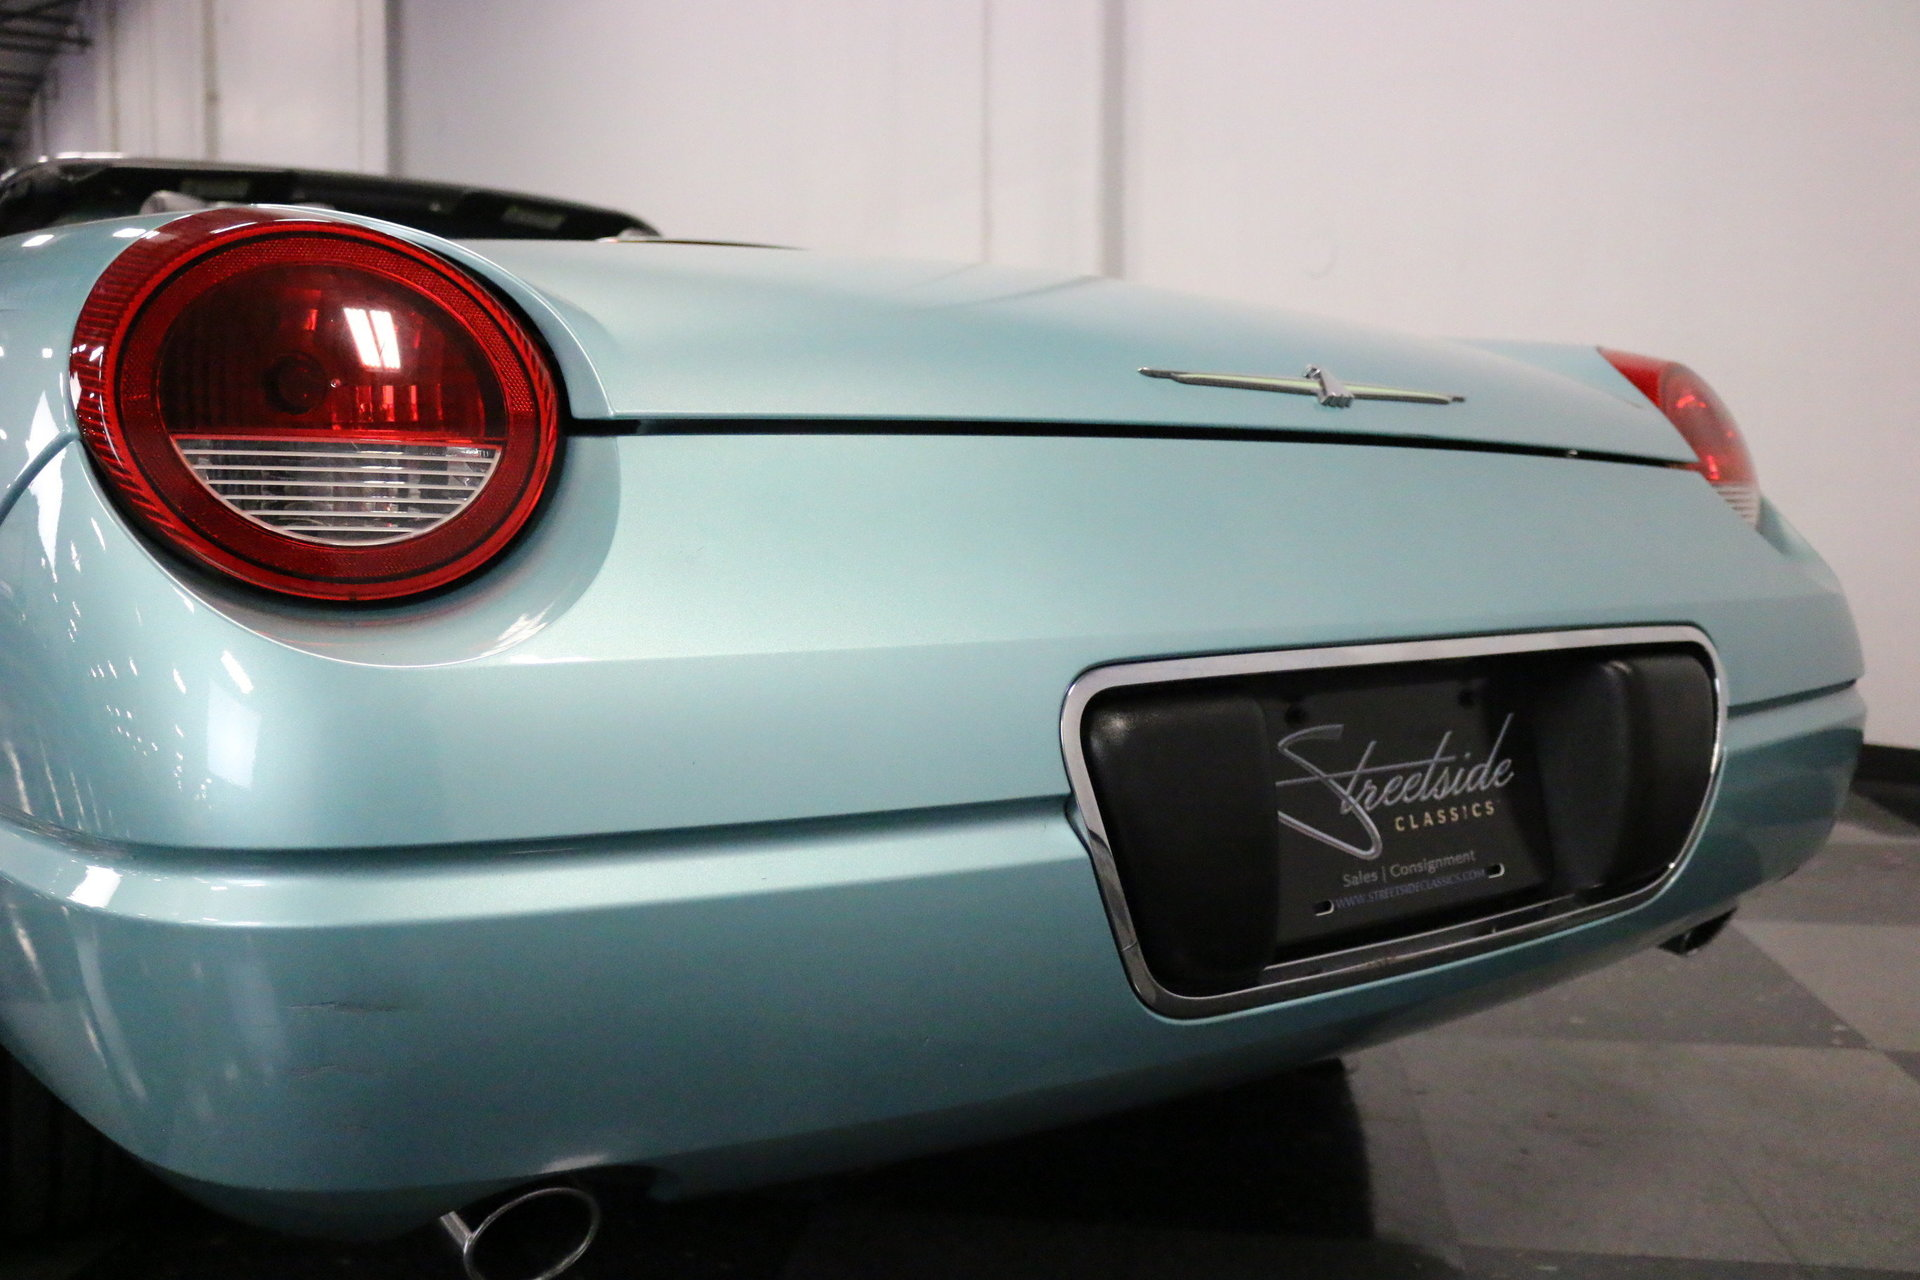 2002 Ford Thunderbird Streetside Classics The Nations Trusted 1964 Tail Light Show More Photos